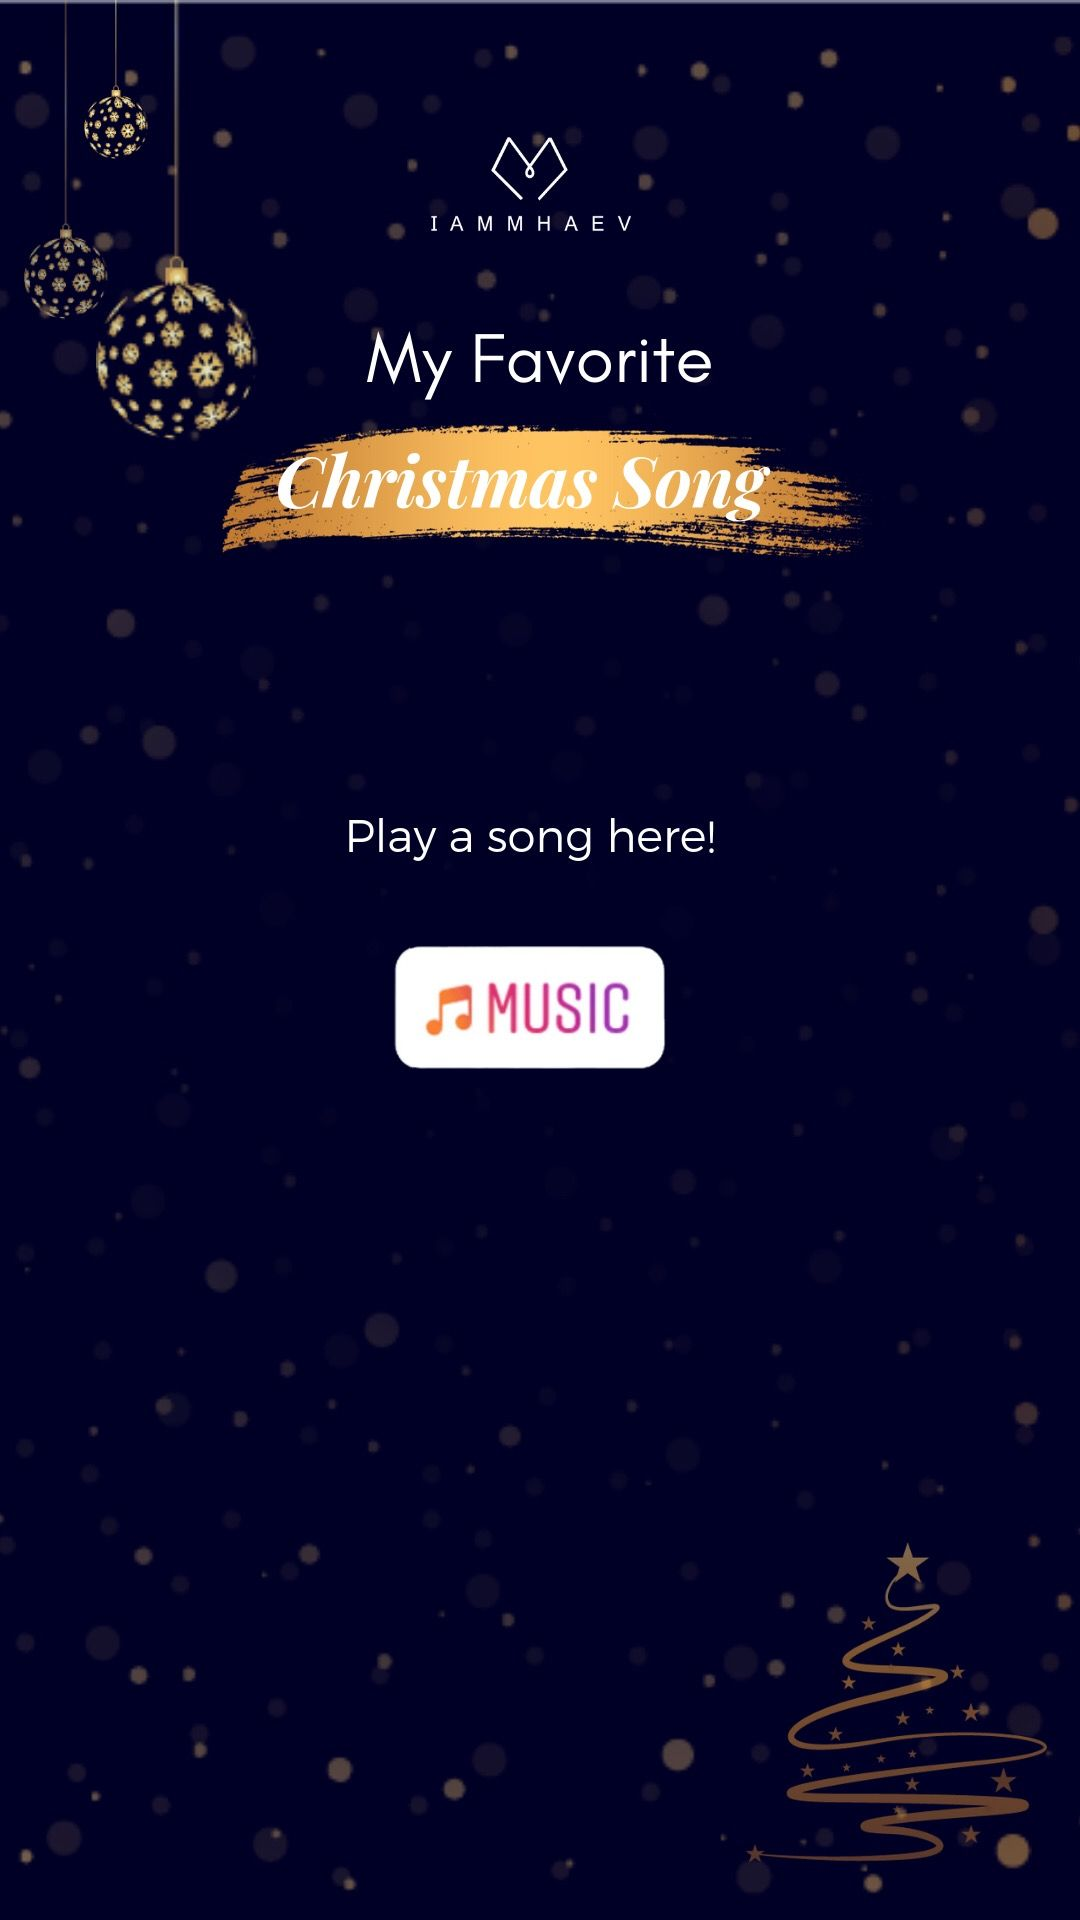 My Favorite Christmas Song INSTAGRAM STORY TEMPLATE